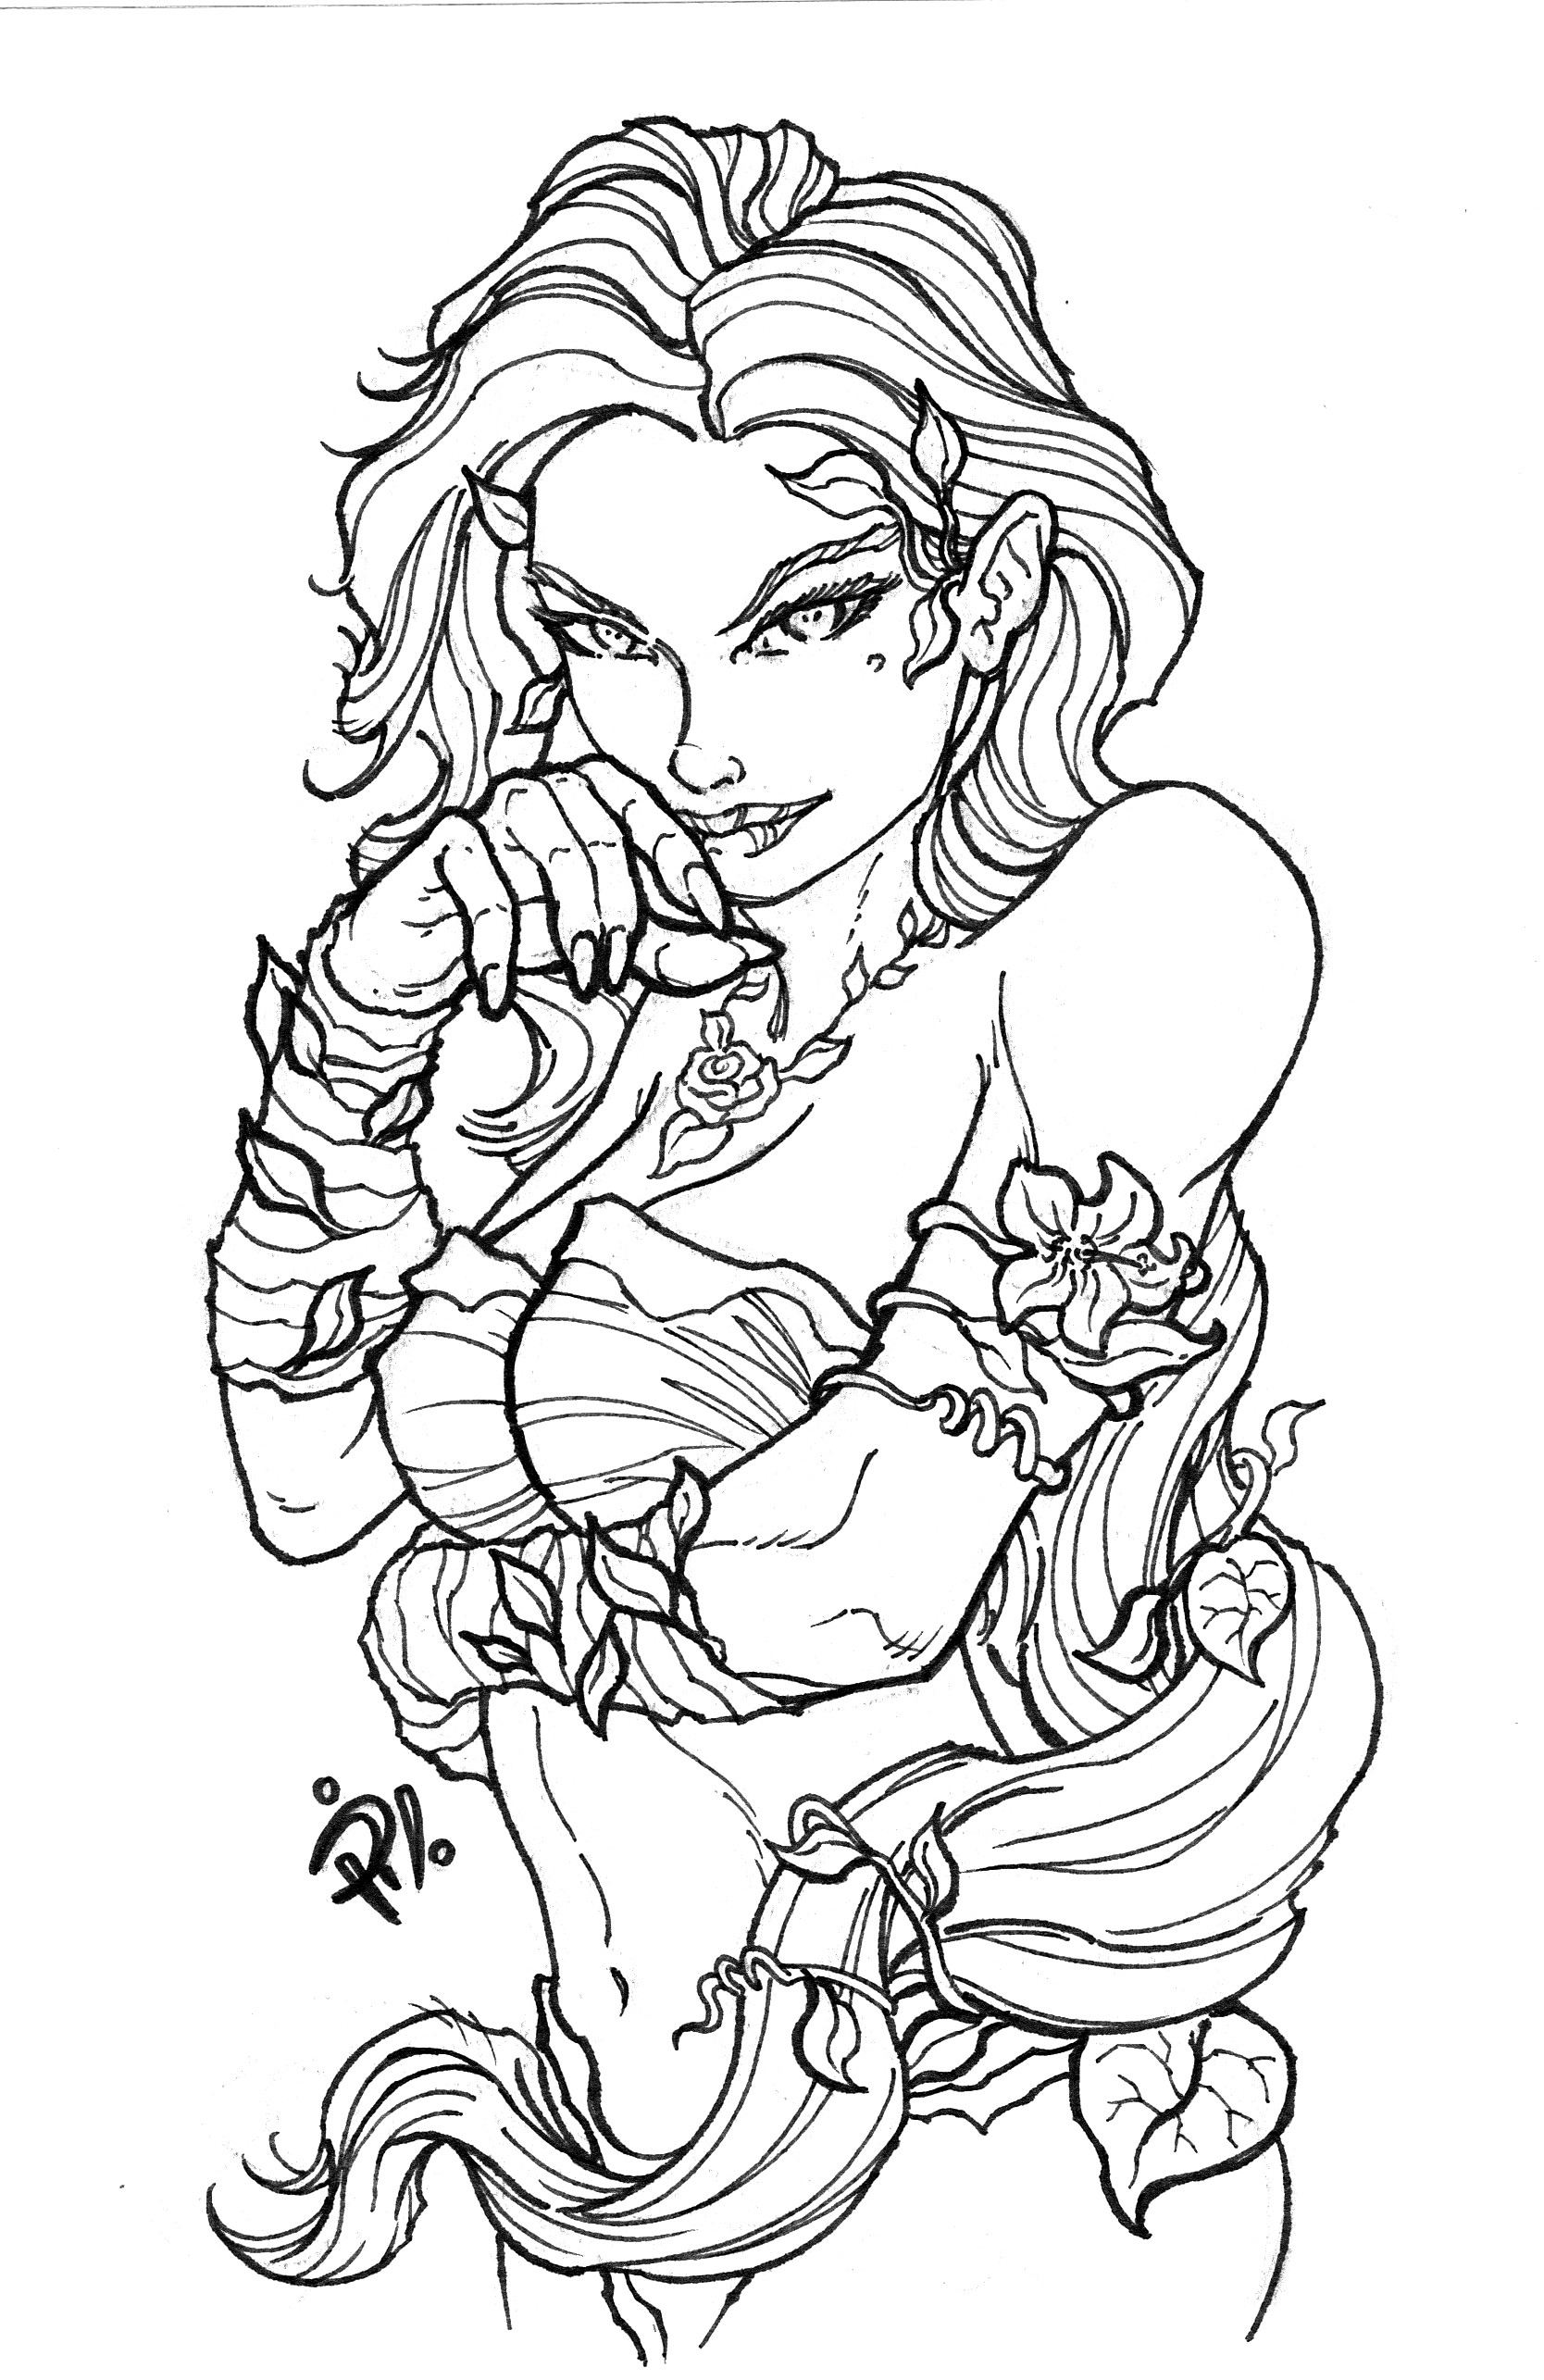 poison ivy colouring pages dc superhero girls coloring pages best coloring pages pages ivy poison colouring